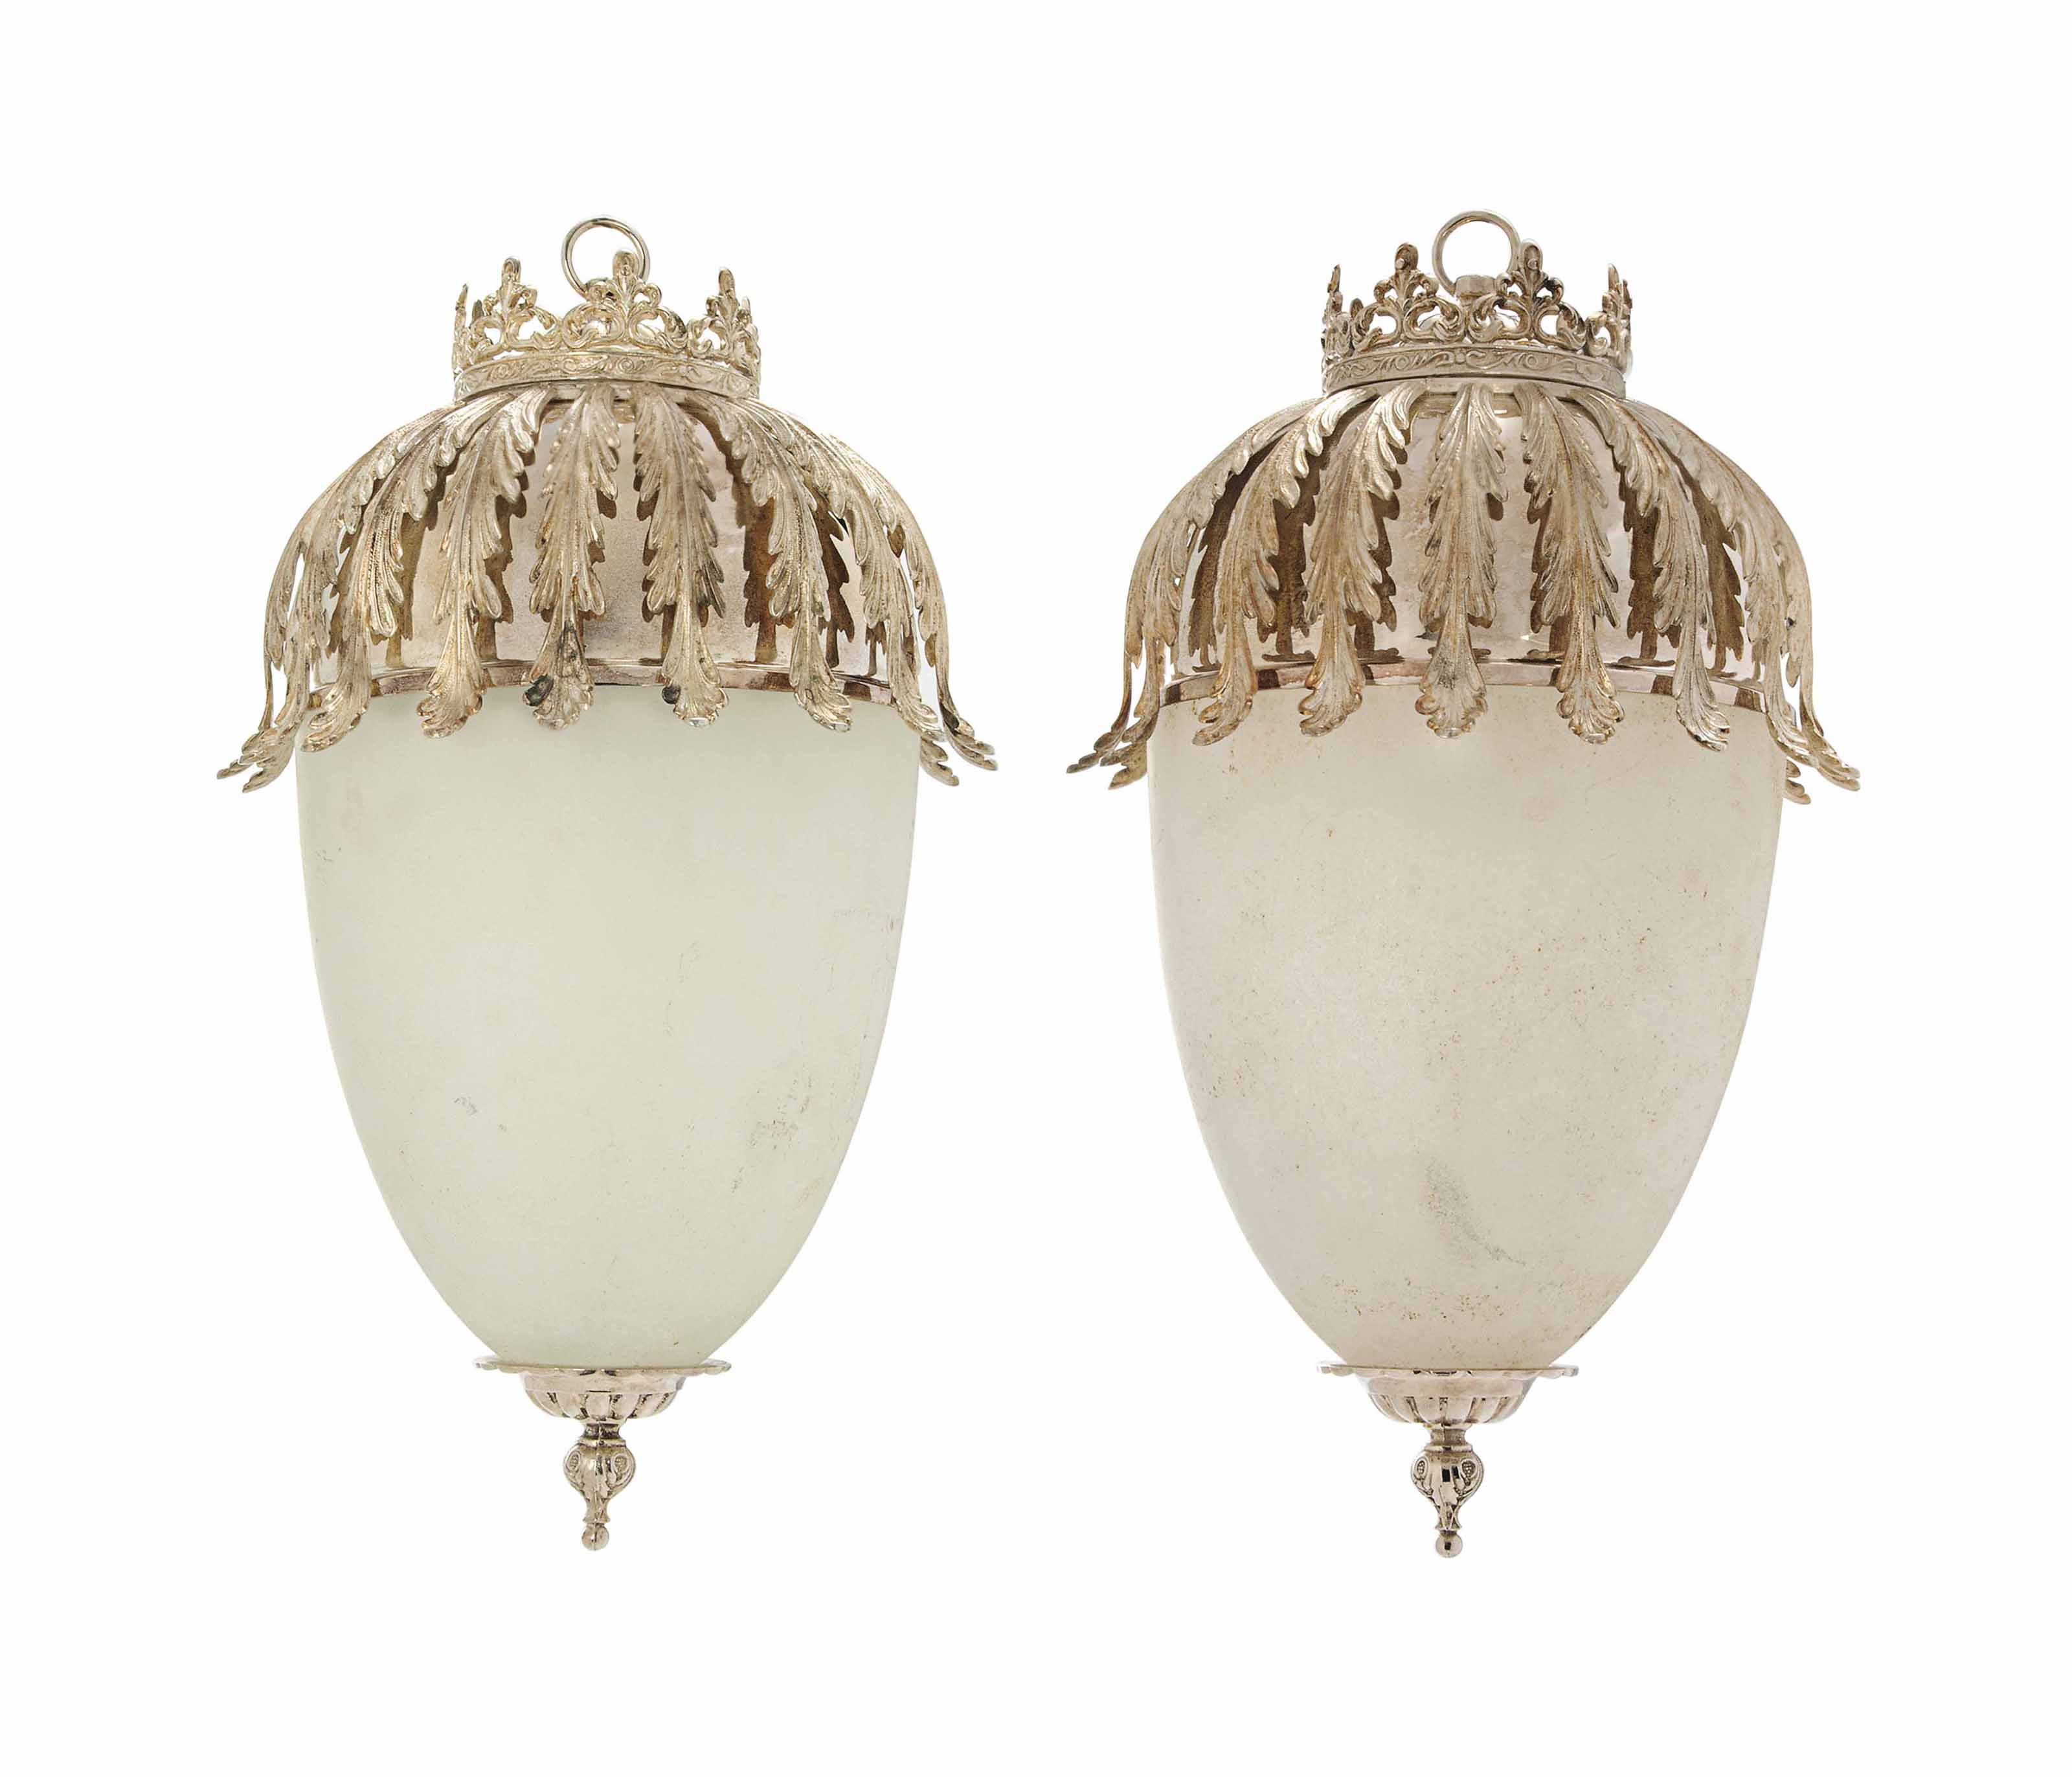 A PAIR OF SILVERED-METAL AND FROSTED GLASS LANTERNS